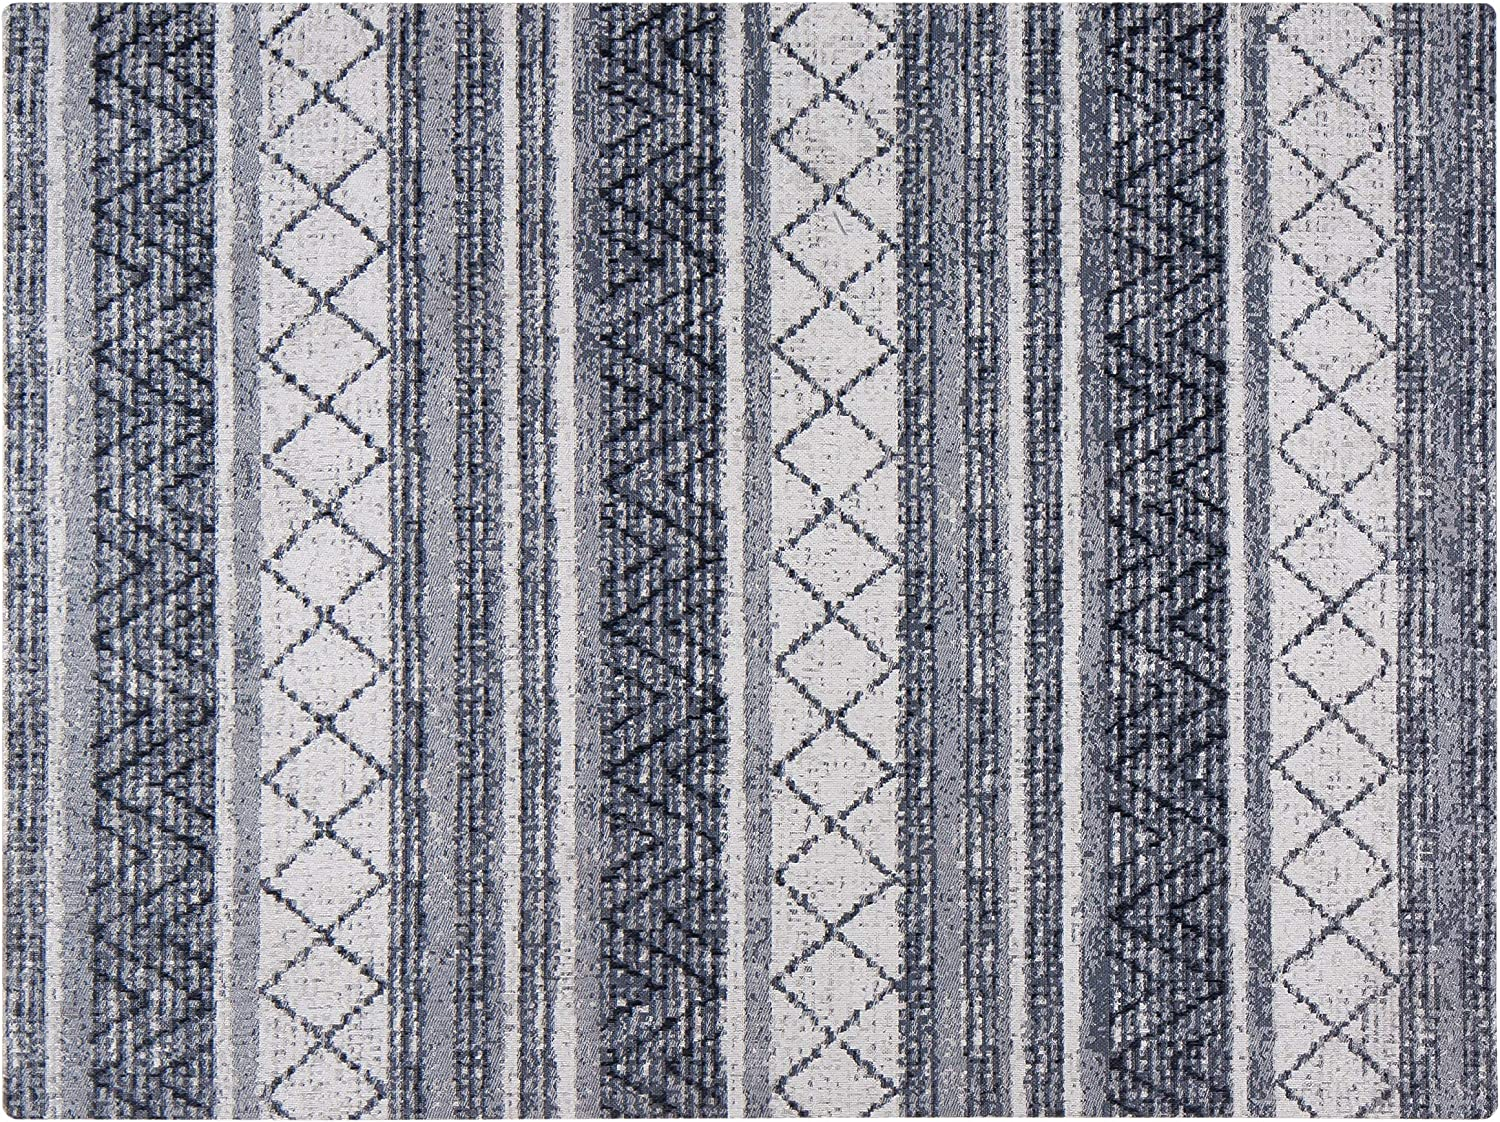 Anji Mountain Chair Mat Rugd Collection For Low Pile Carpets /& Hard Surfaces 1//4 Thick Light Blue Tribal Floral Tabriz